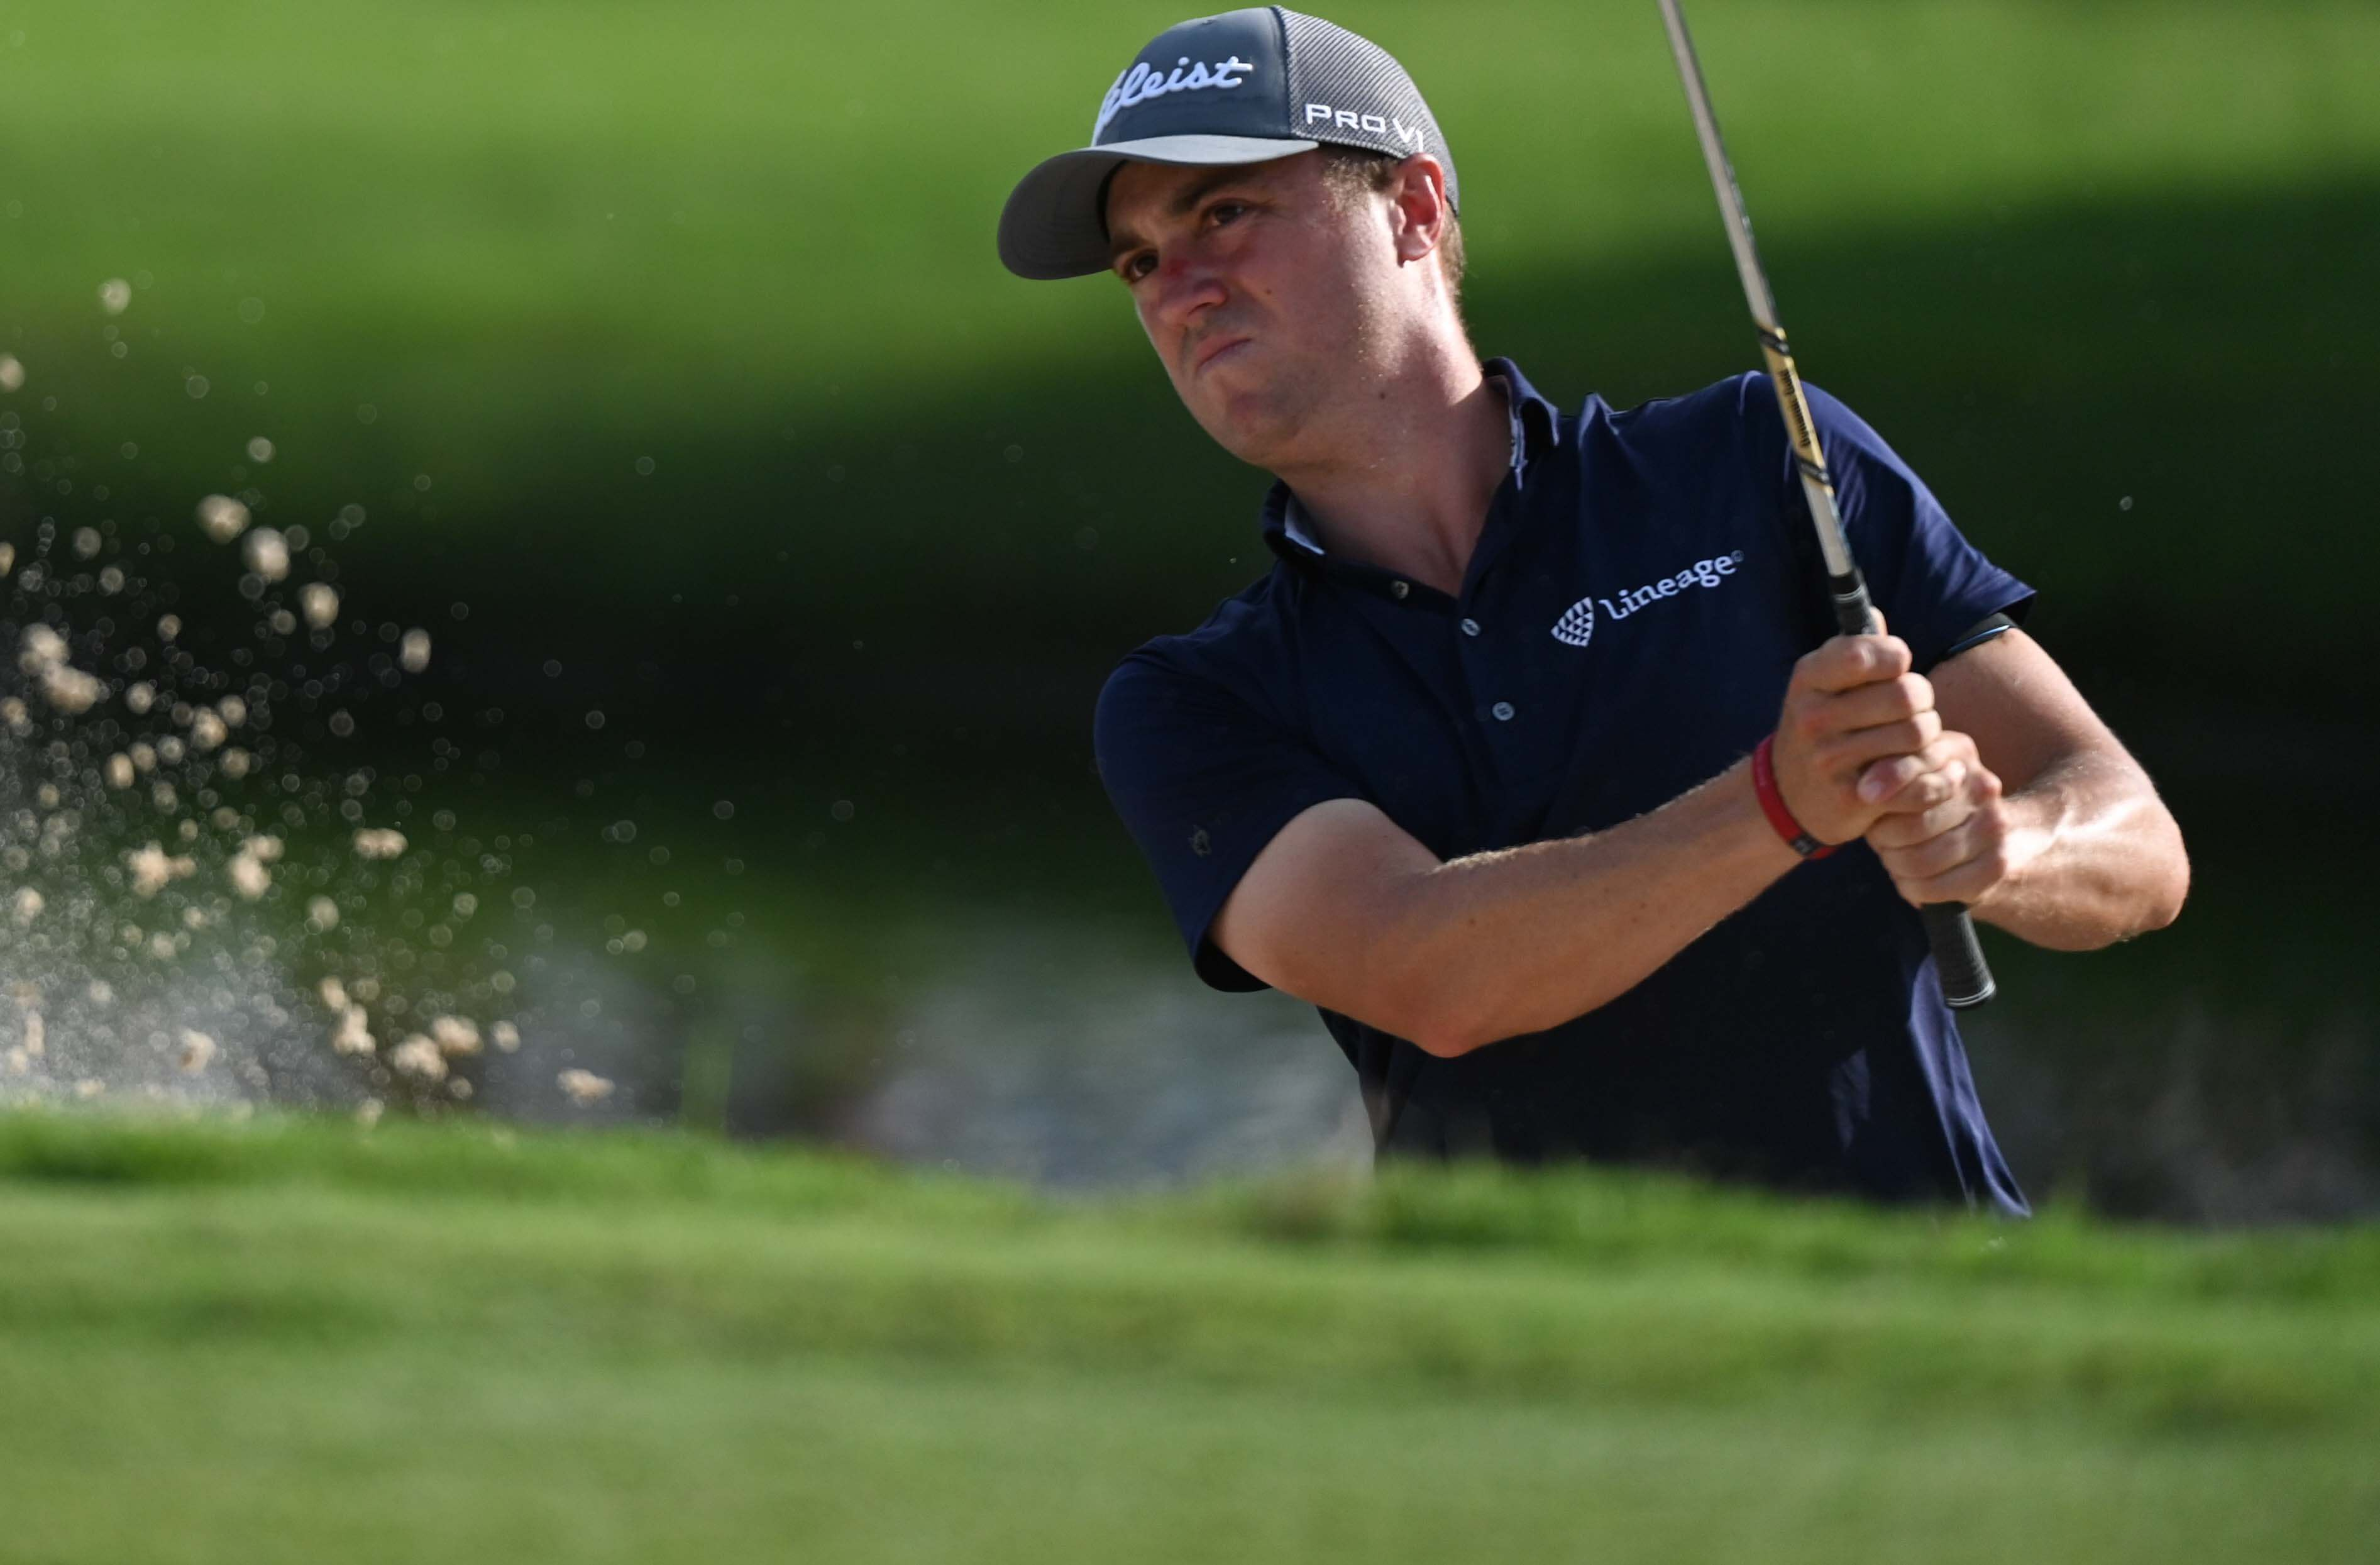 Ryder Cup Props: Justin Thomas Favored for Most US Points